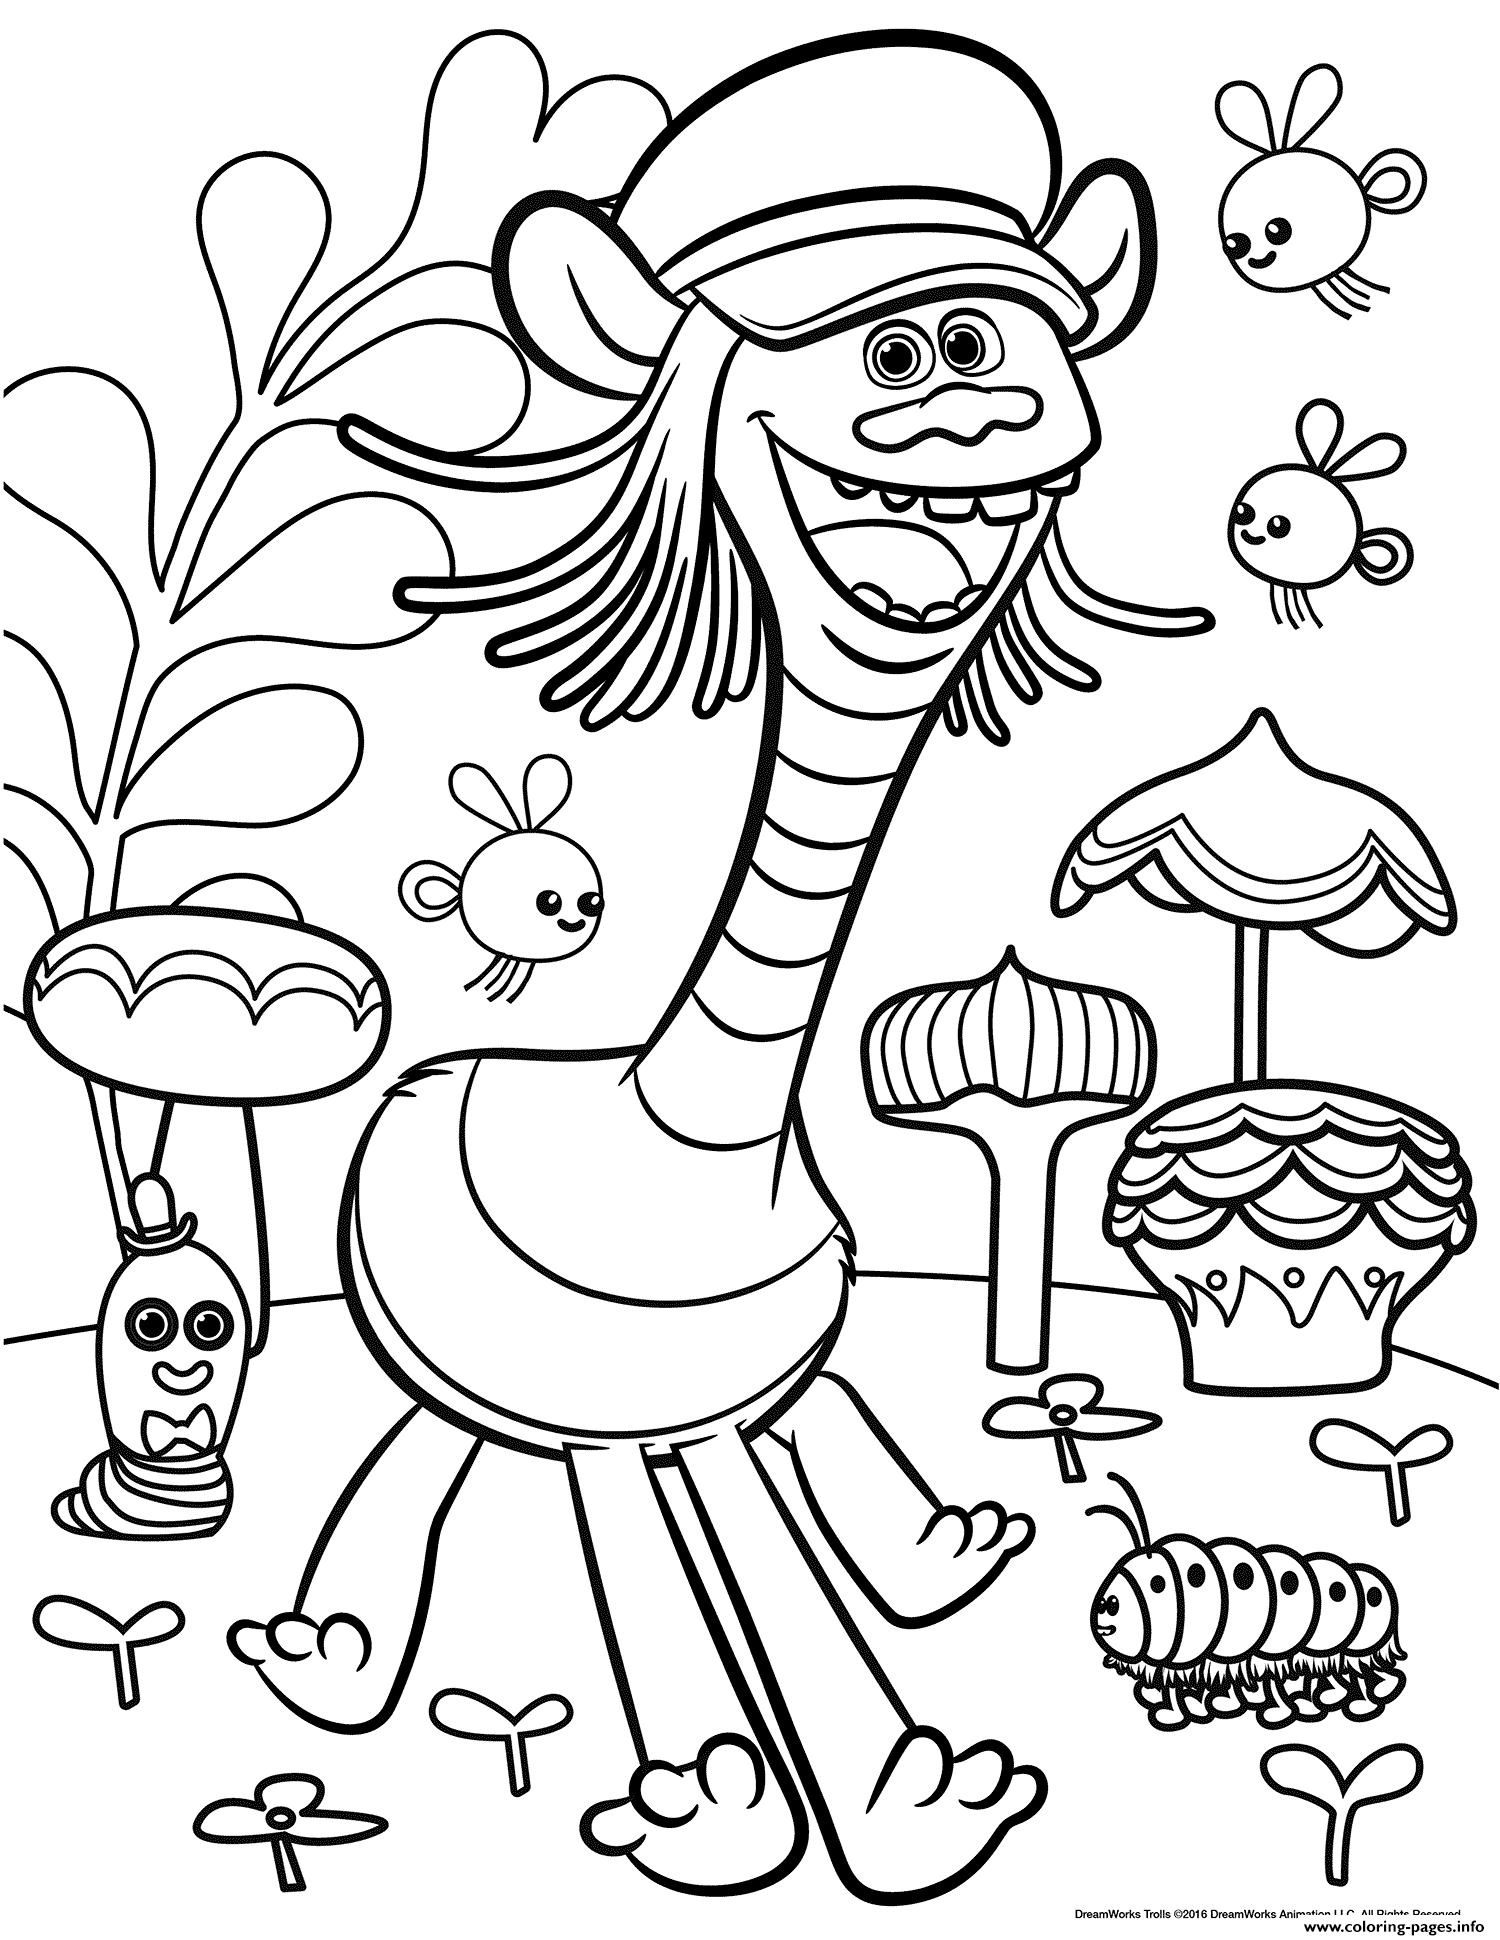 print trolls movie color troll coloring pages - Trolls Coloring Pages